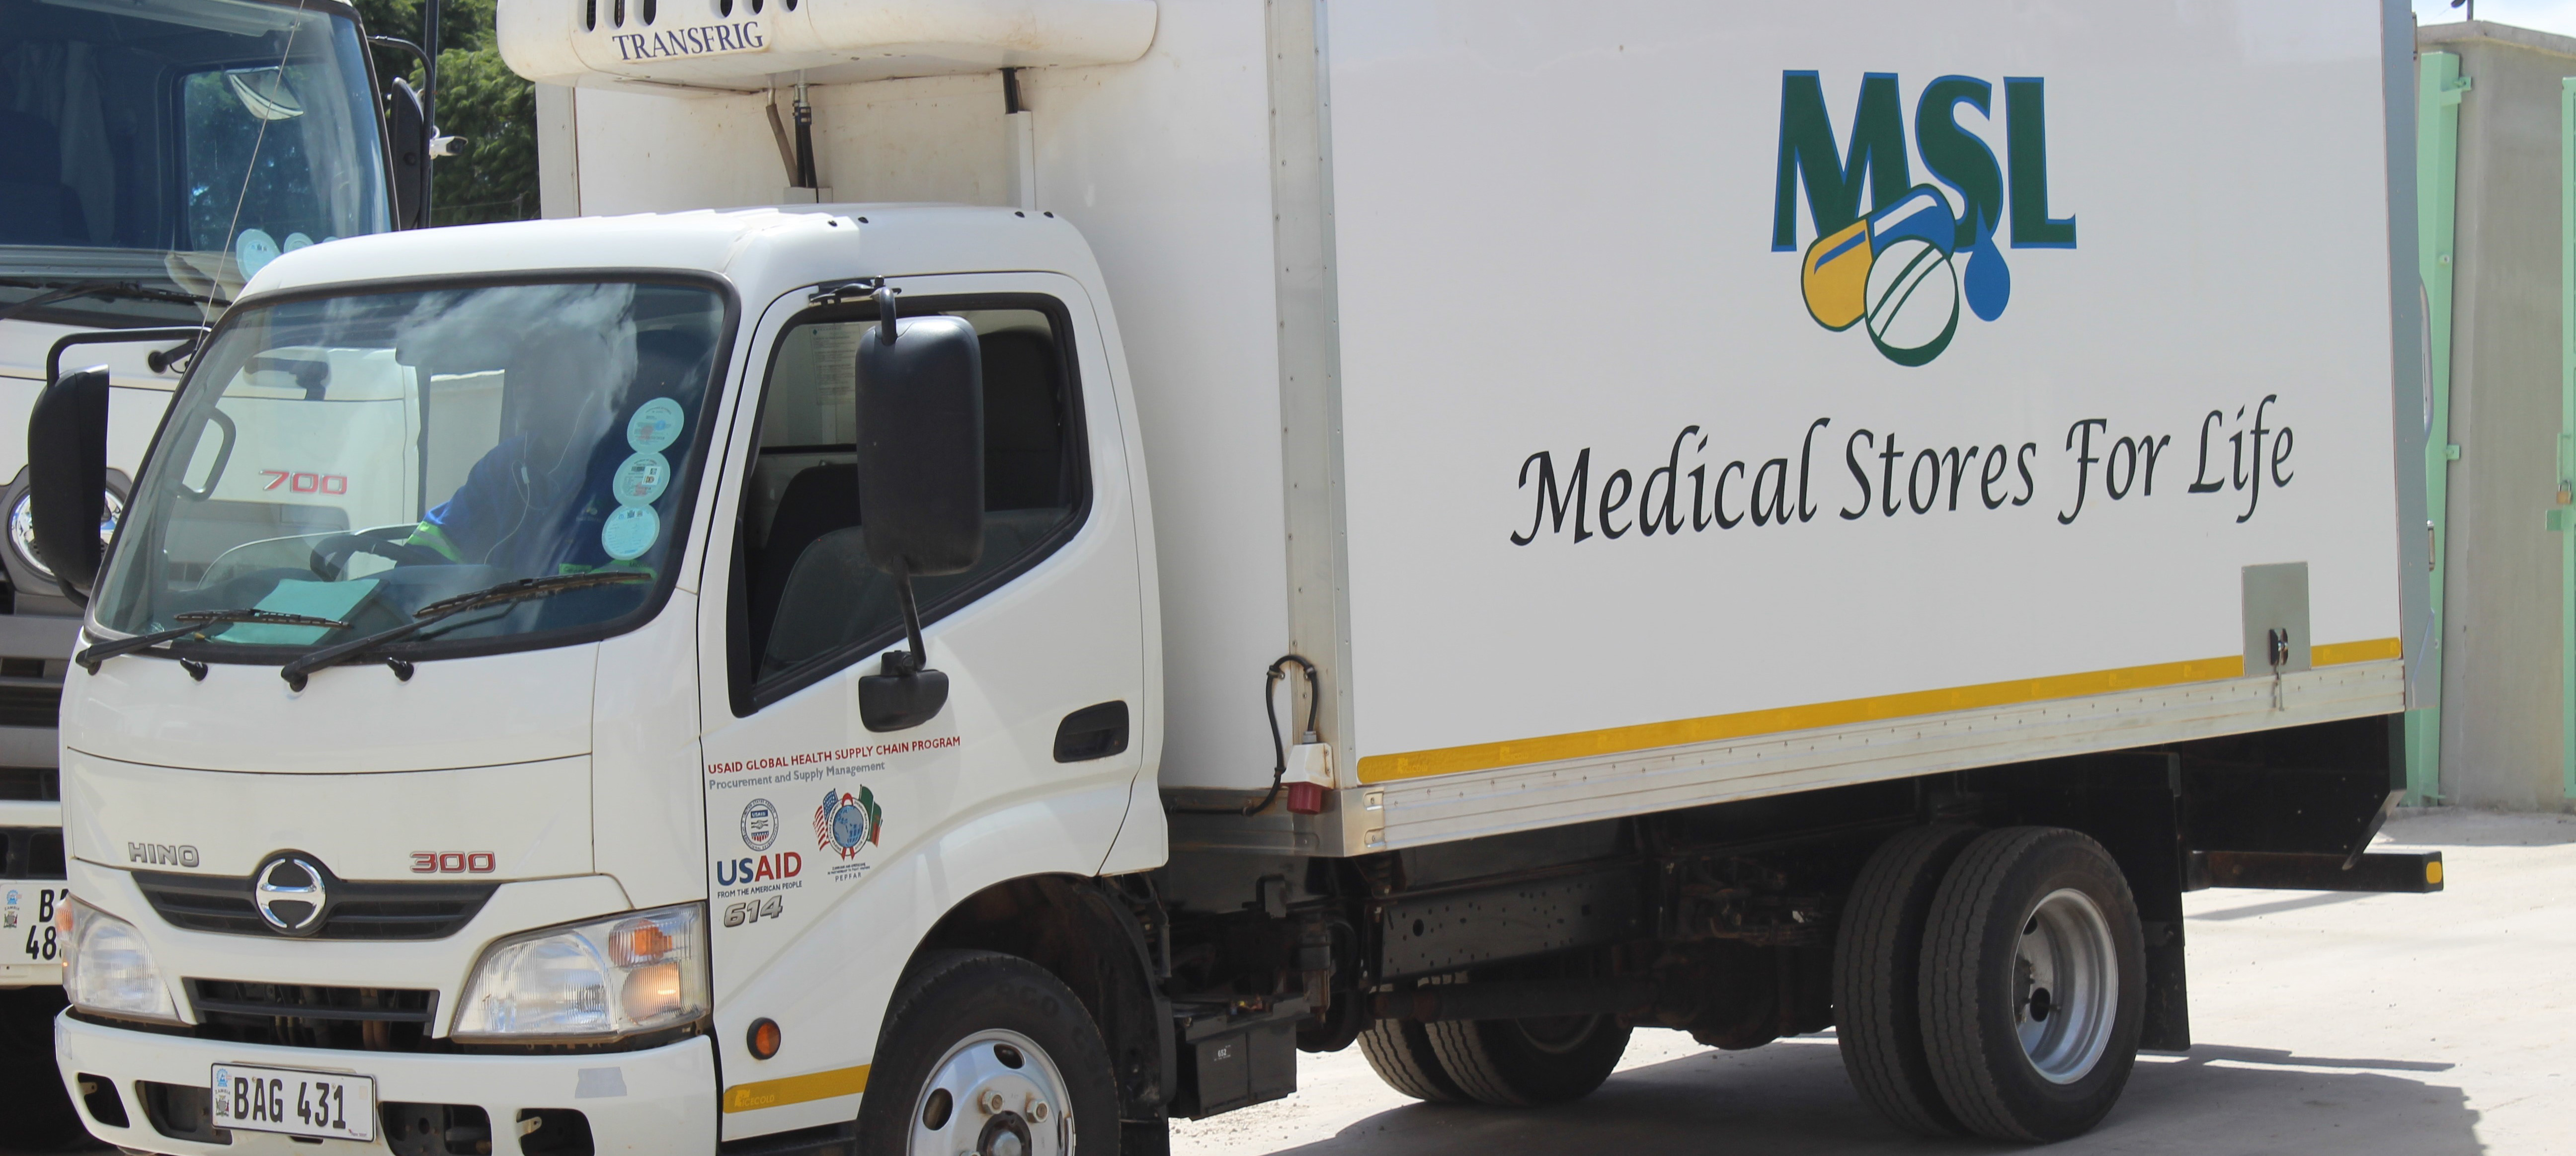 PEPFAR donated three refrigerated trucks like this to help Medical Stores Limited deliver cold-chain laboratory supplies to laboratories sites in Zambia.